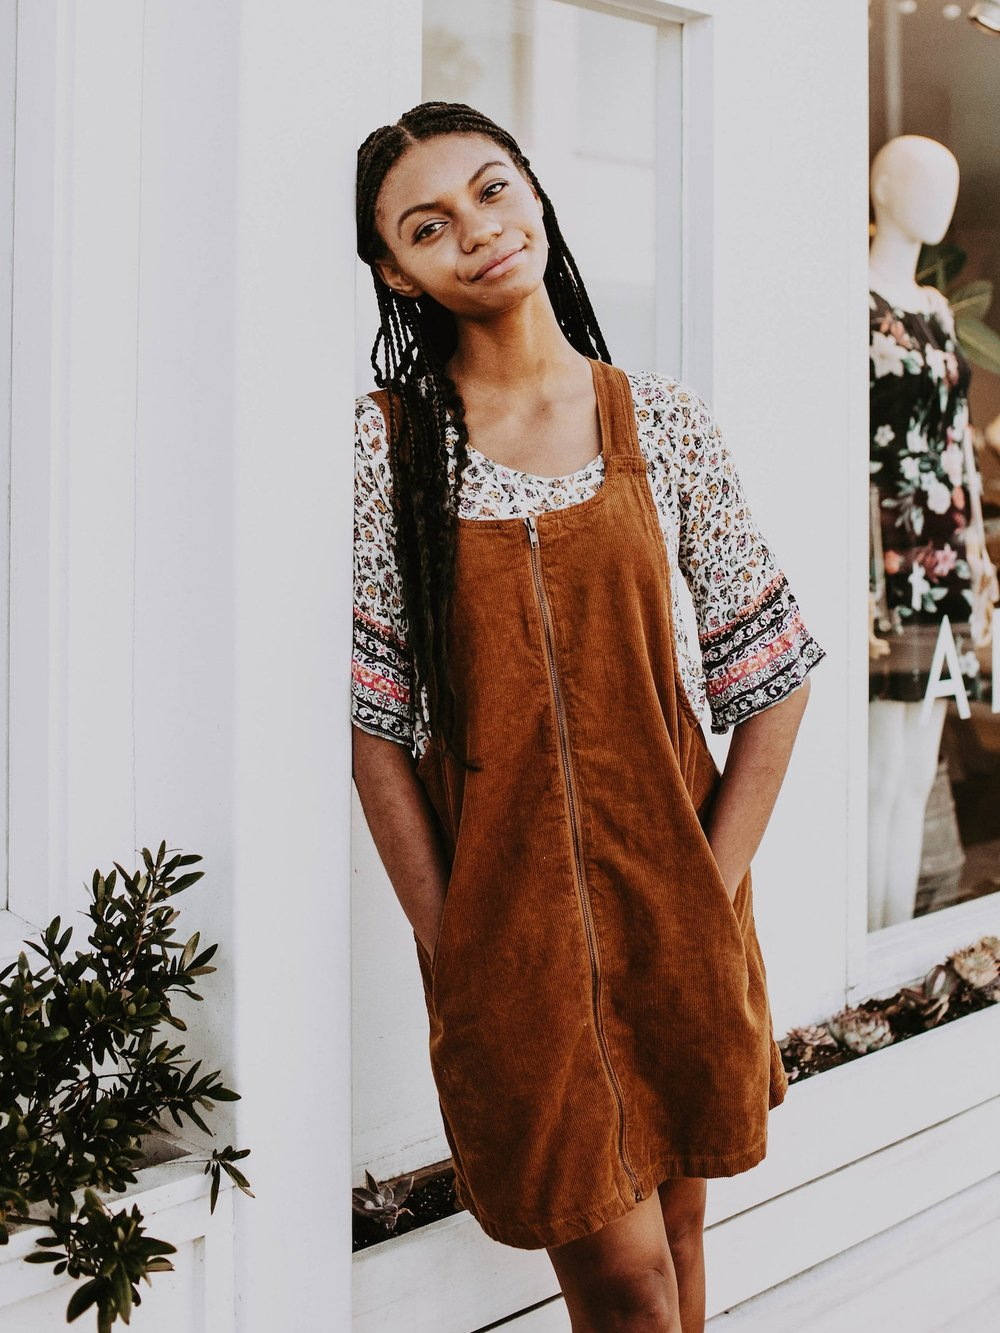 Cute back to school outfit idea // A Week Of 1970s-Inspired Outfits With Leah Thomas, The Sustainable Lifestyle Blogger Behind Green Girl Leah on The Good Trade